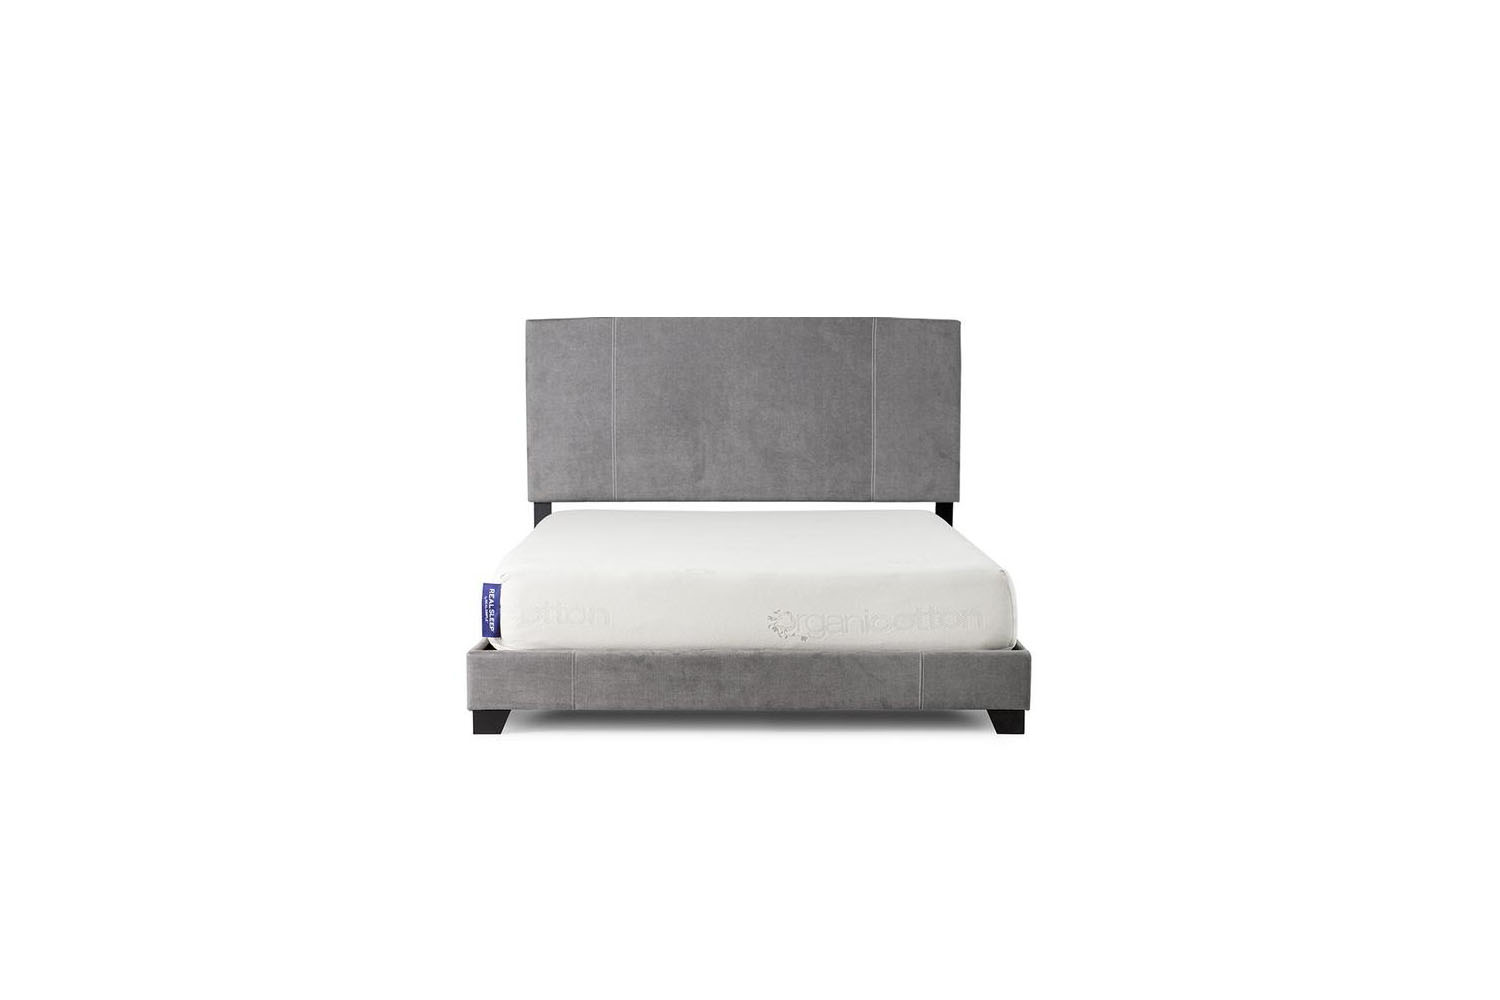 Real Sleep Mattress (6 Essentials for a Cozy Bedroom)